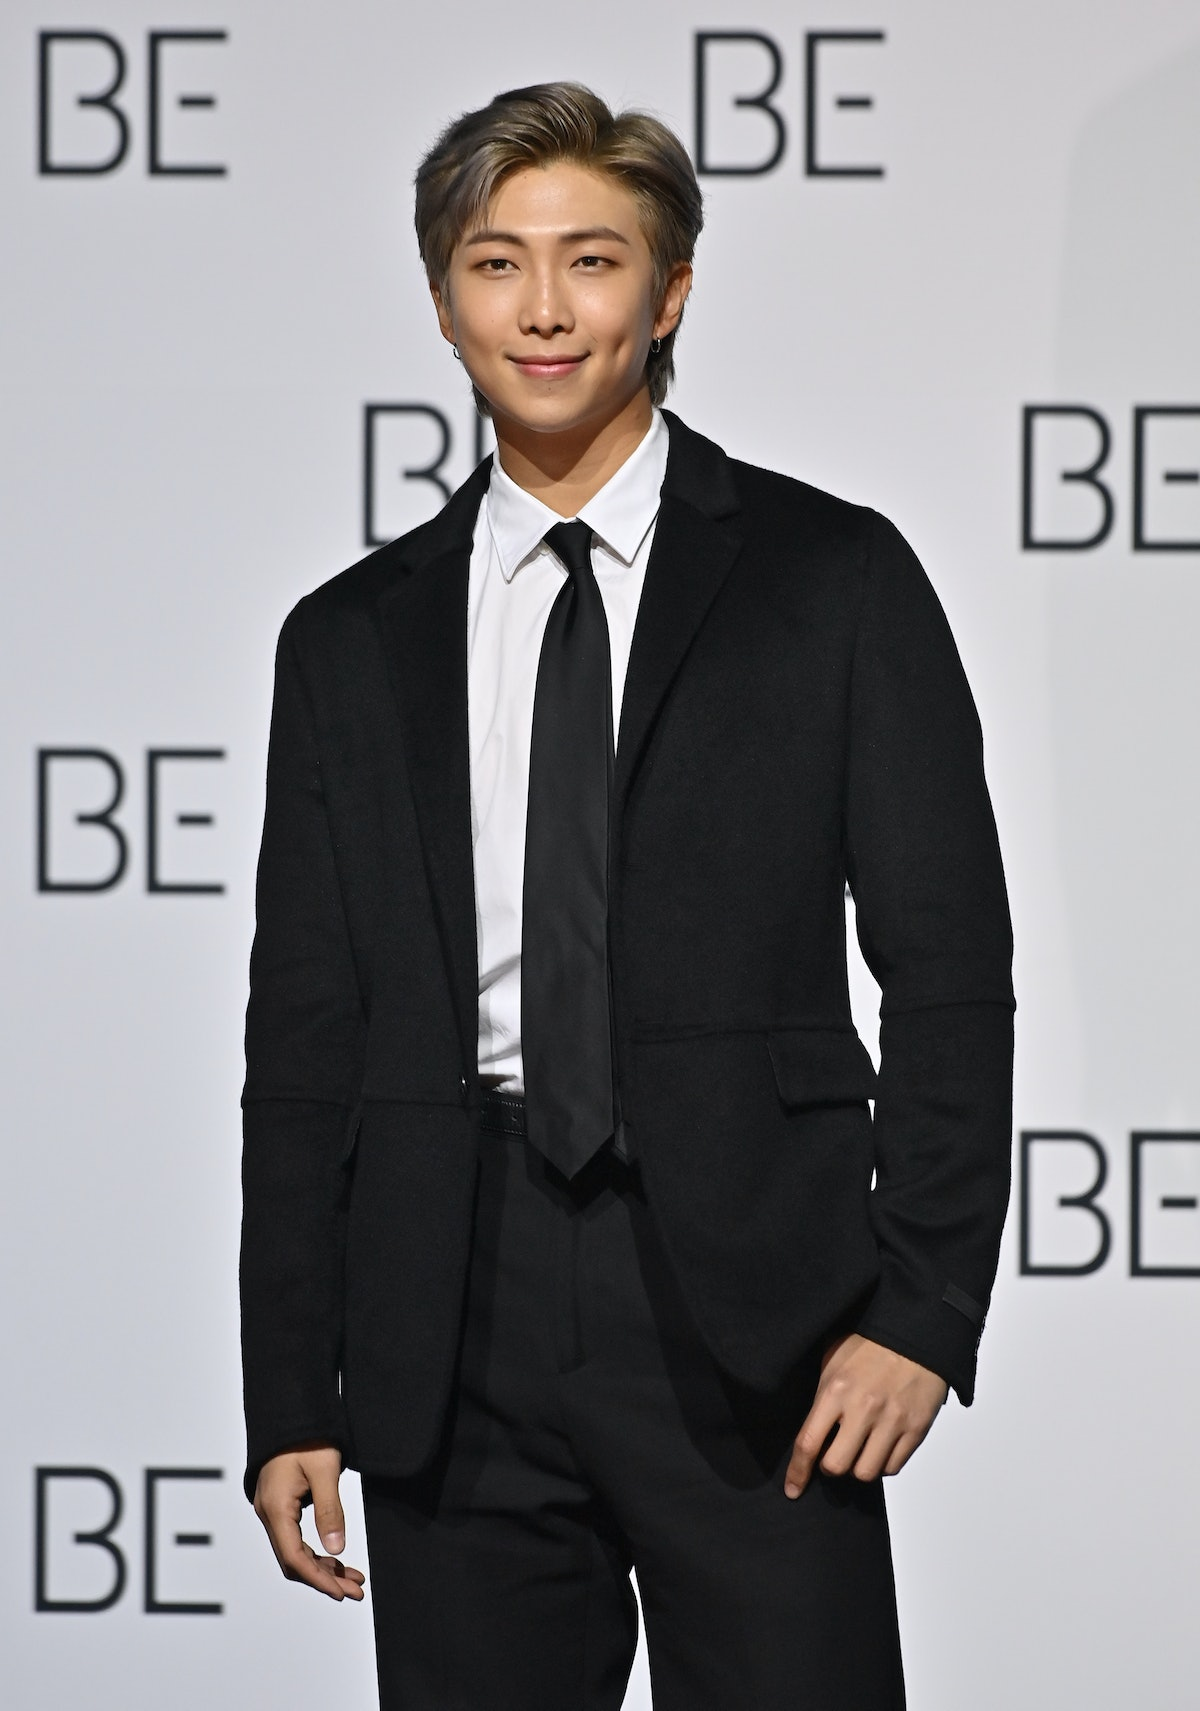 South Korean K-pop boy band BTS member RM poses for a photo session during a press conference on BTS new album 'BE (Deluxe Edition)' in Seoul on November 20, 2020. (Photo by Jung Yeon-je / AFP) (Photo by JUNG YEON-JE/AFP via Getty Images)